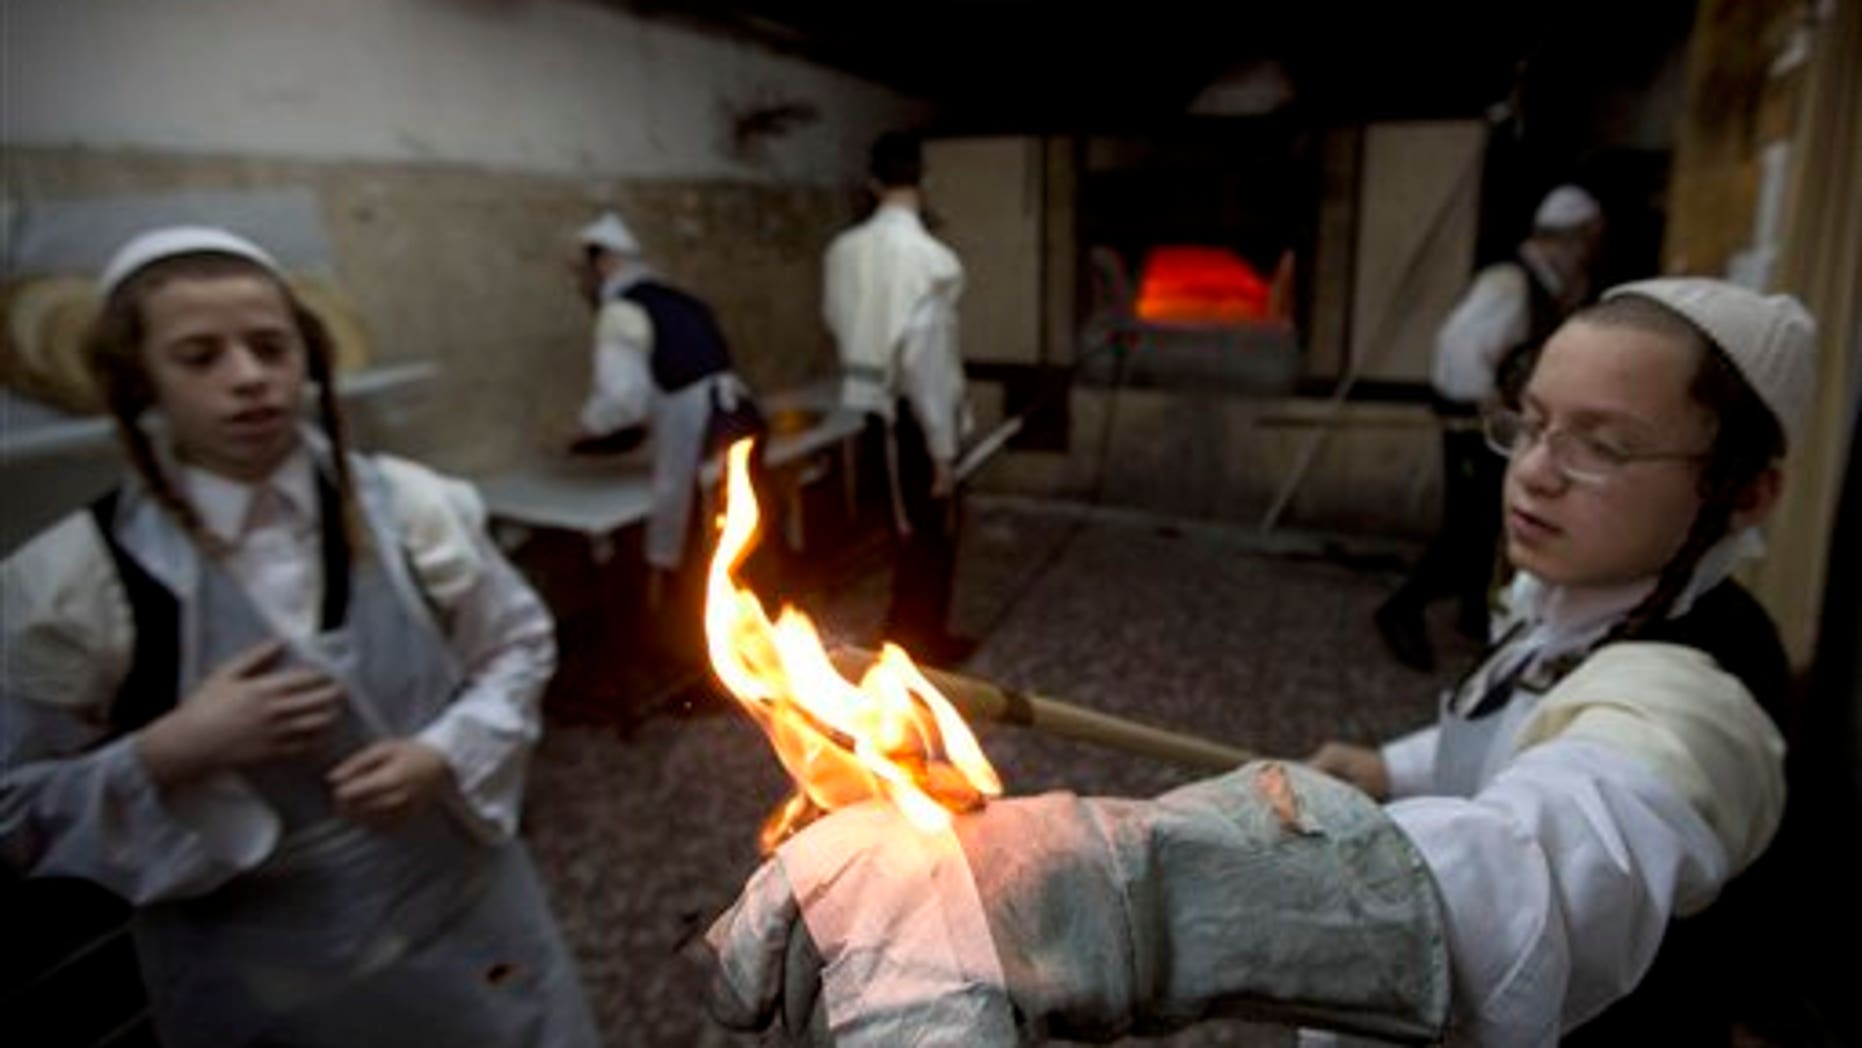 Ultra-Orthodox Jews prepare special matzoh, a traditional handmade Passover unleavened bread, at a bakery in Jerusalem, Wednesday, April 1, 2015. (AP Photo/Sebastian Scheiner)